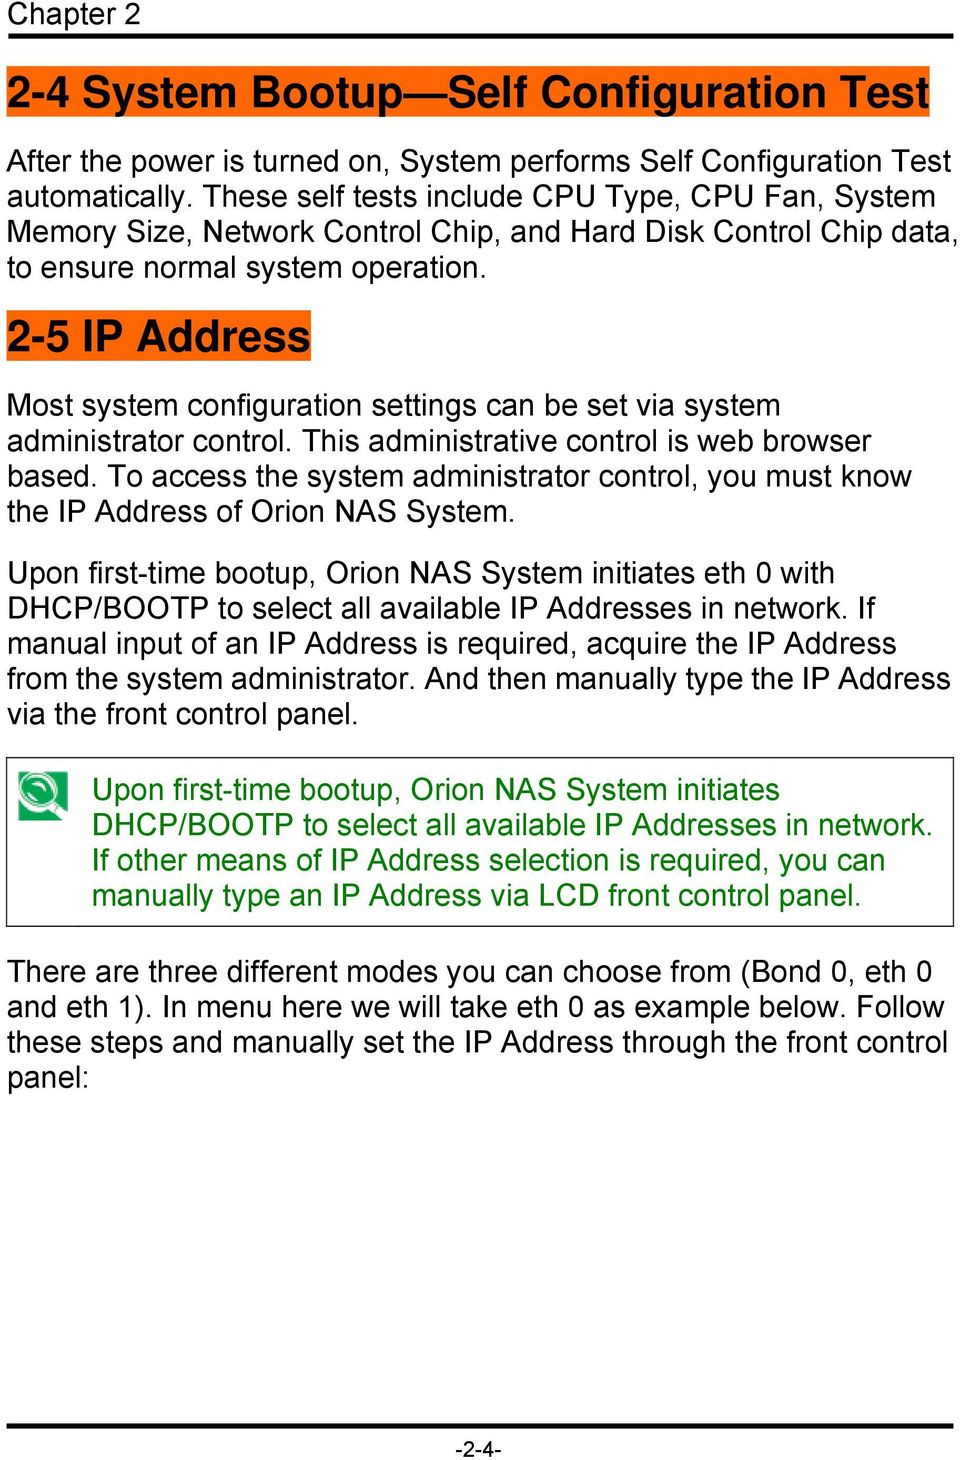 2-5 IP Address Most system configuration settings can be set via system administrator control. This administrative control is web browser based.